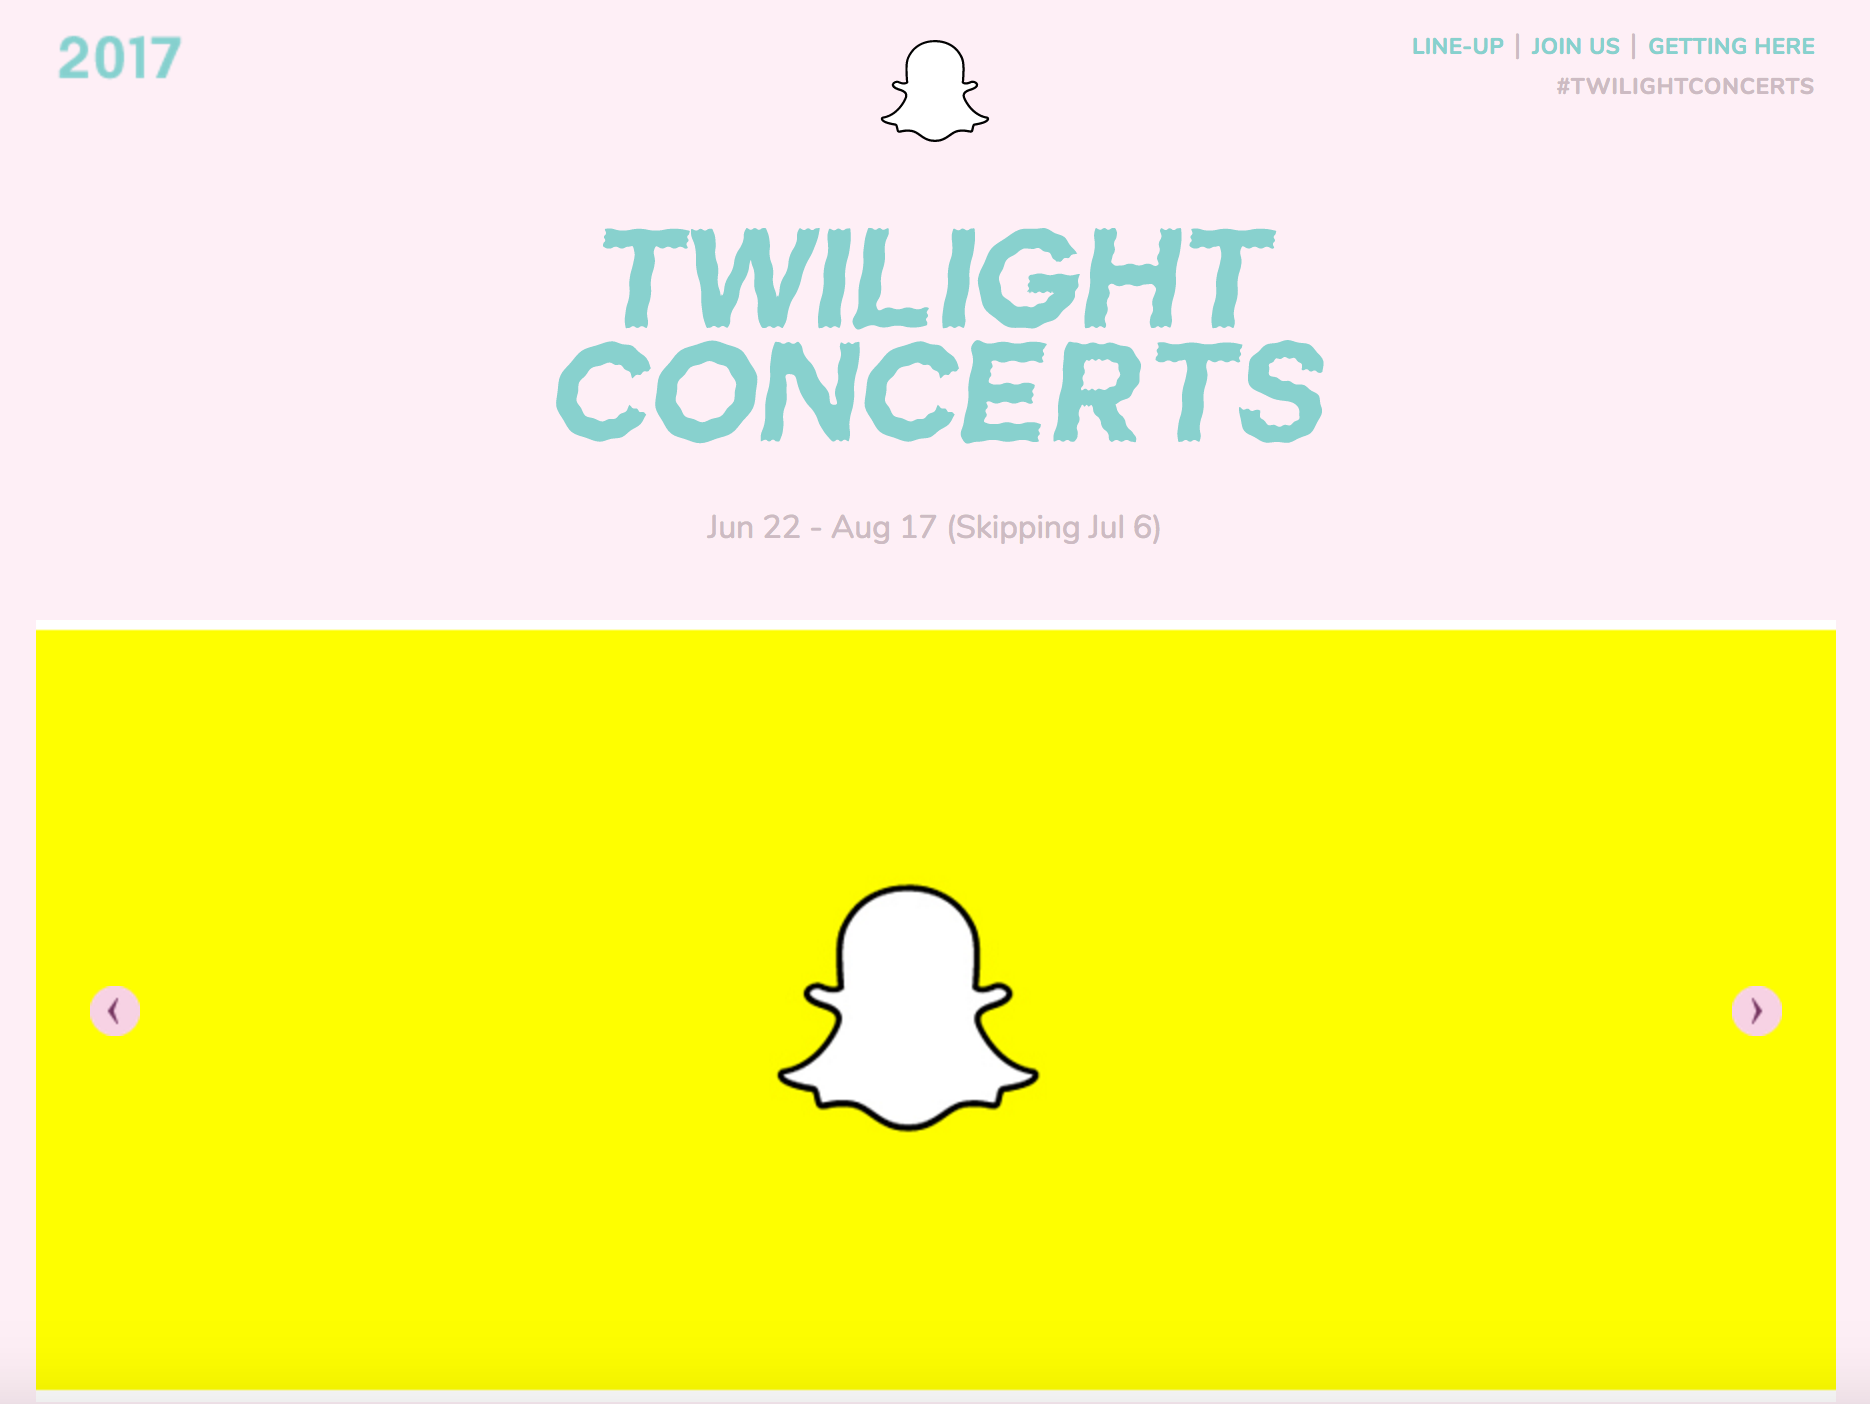 Snapchat twilight concerts